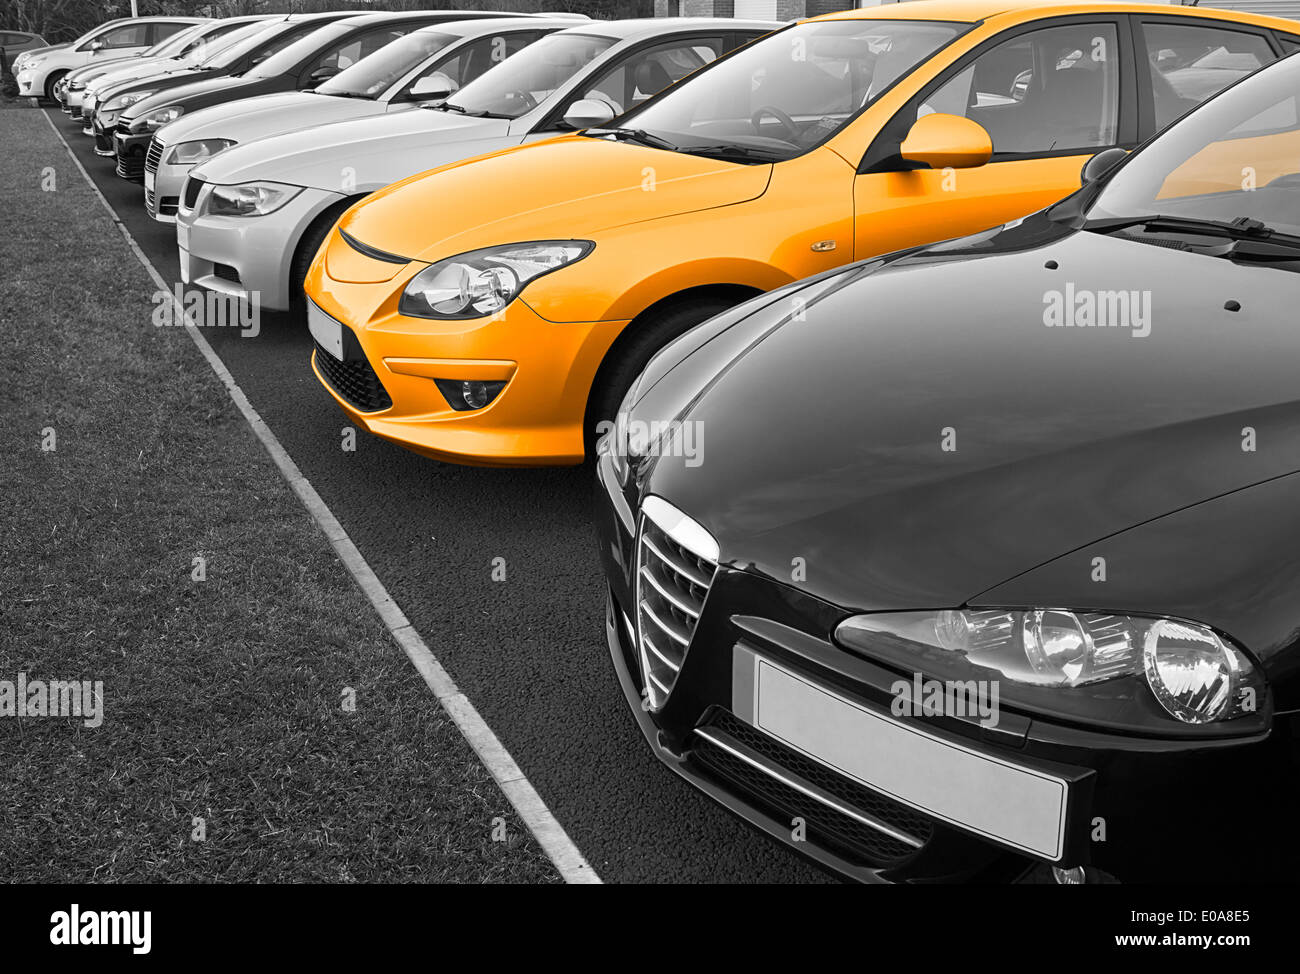 Row of used cars for sale in row with one in colour, great concept for choice of perfect vehicle to buy. - Stock Image